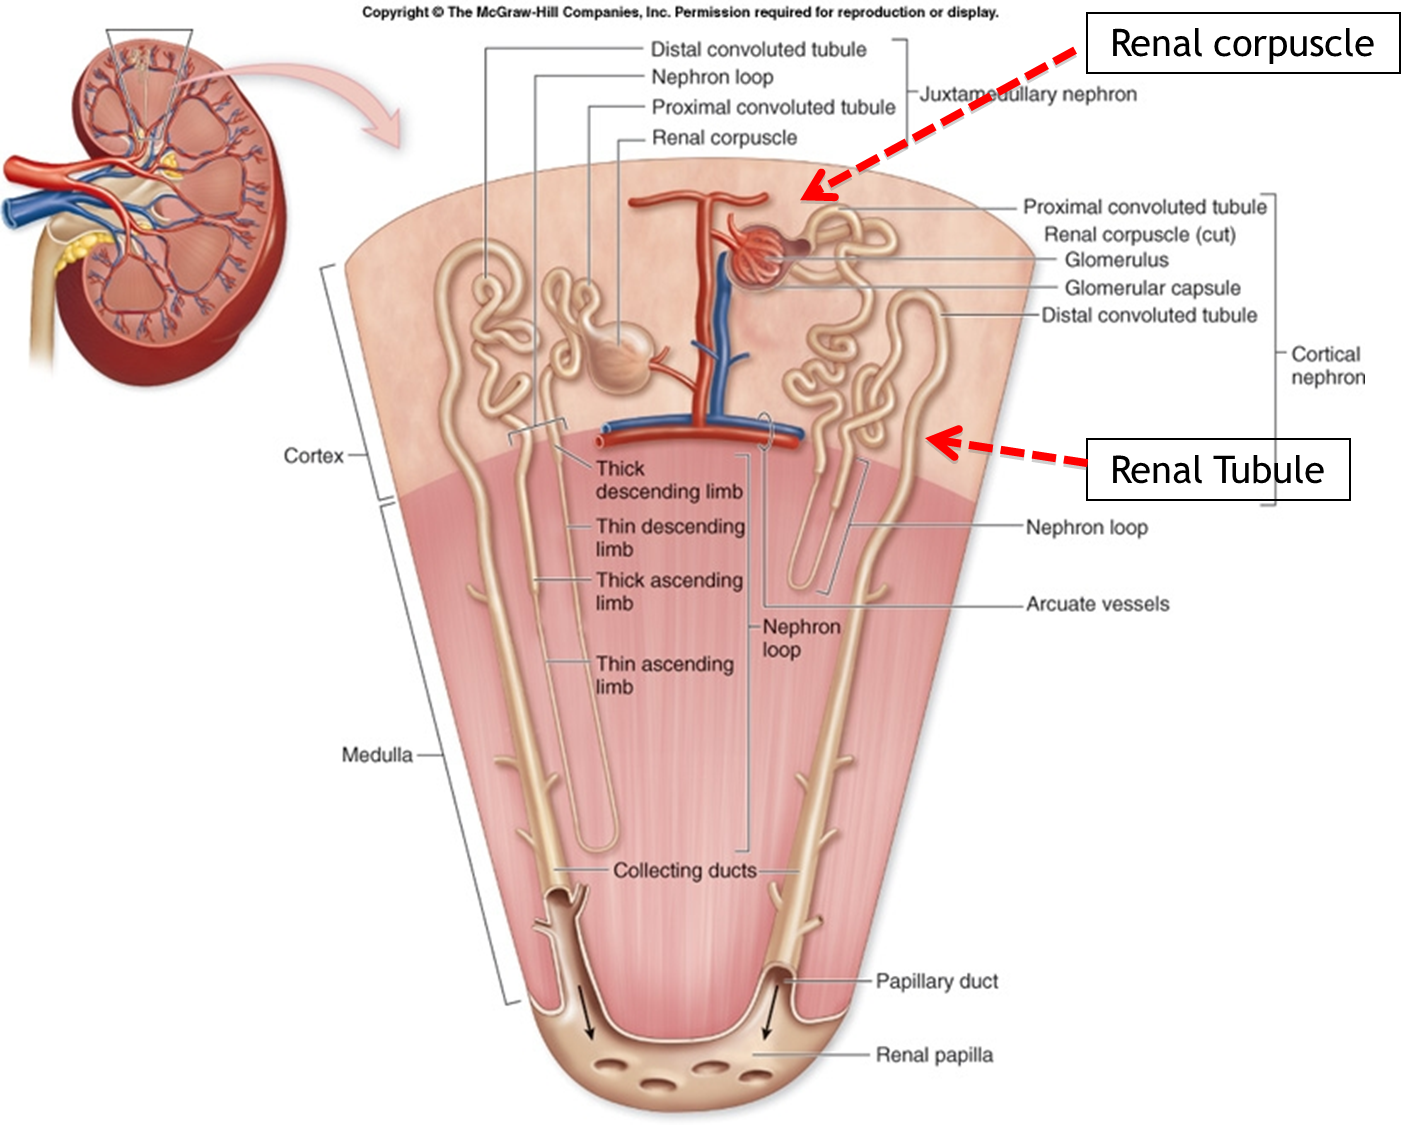 Human Anatomy Diagram Kidney Internal Organs Health Medicine And